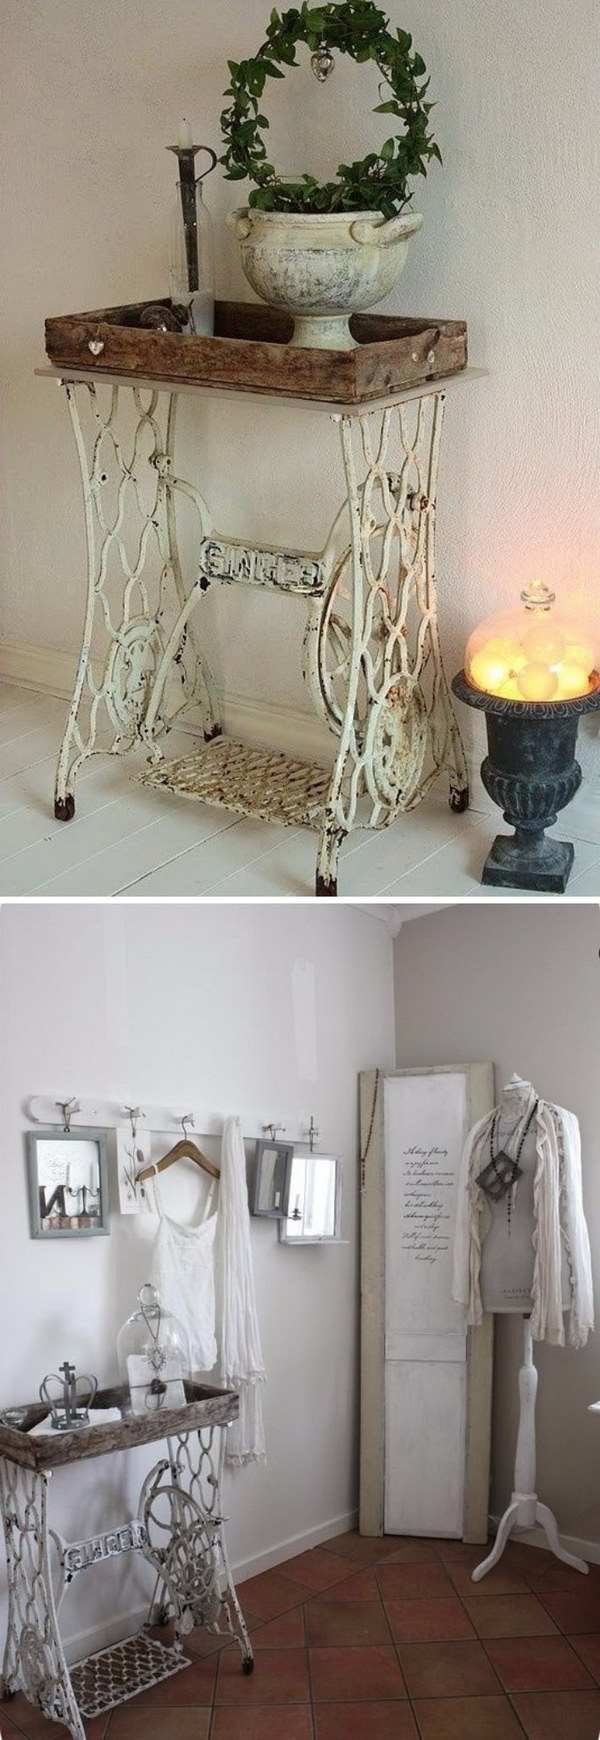 Shabby Chic Singer Sewing Machine Table with Antique White Finish.